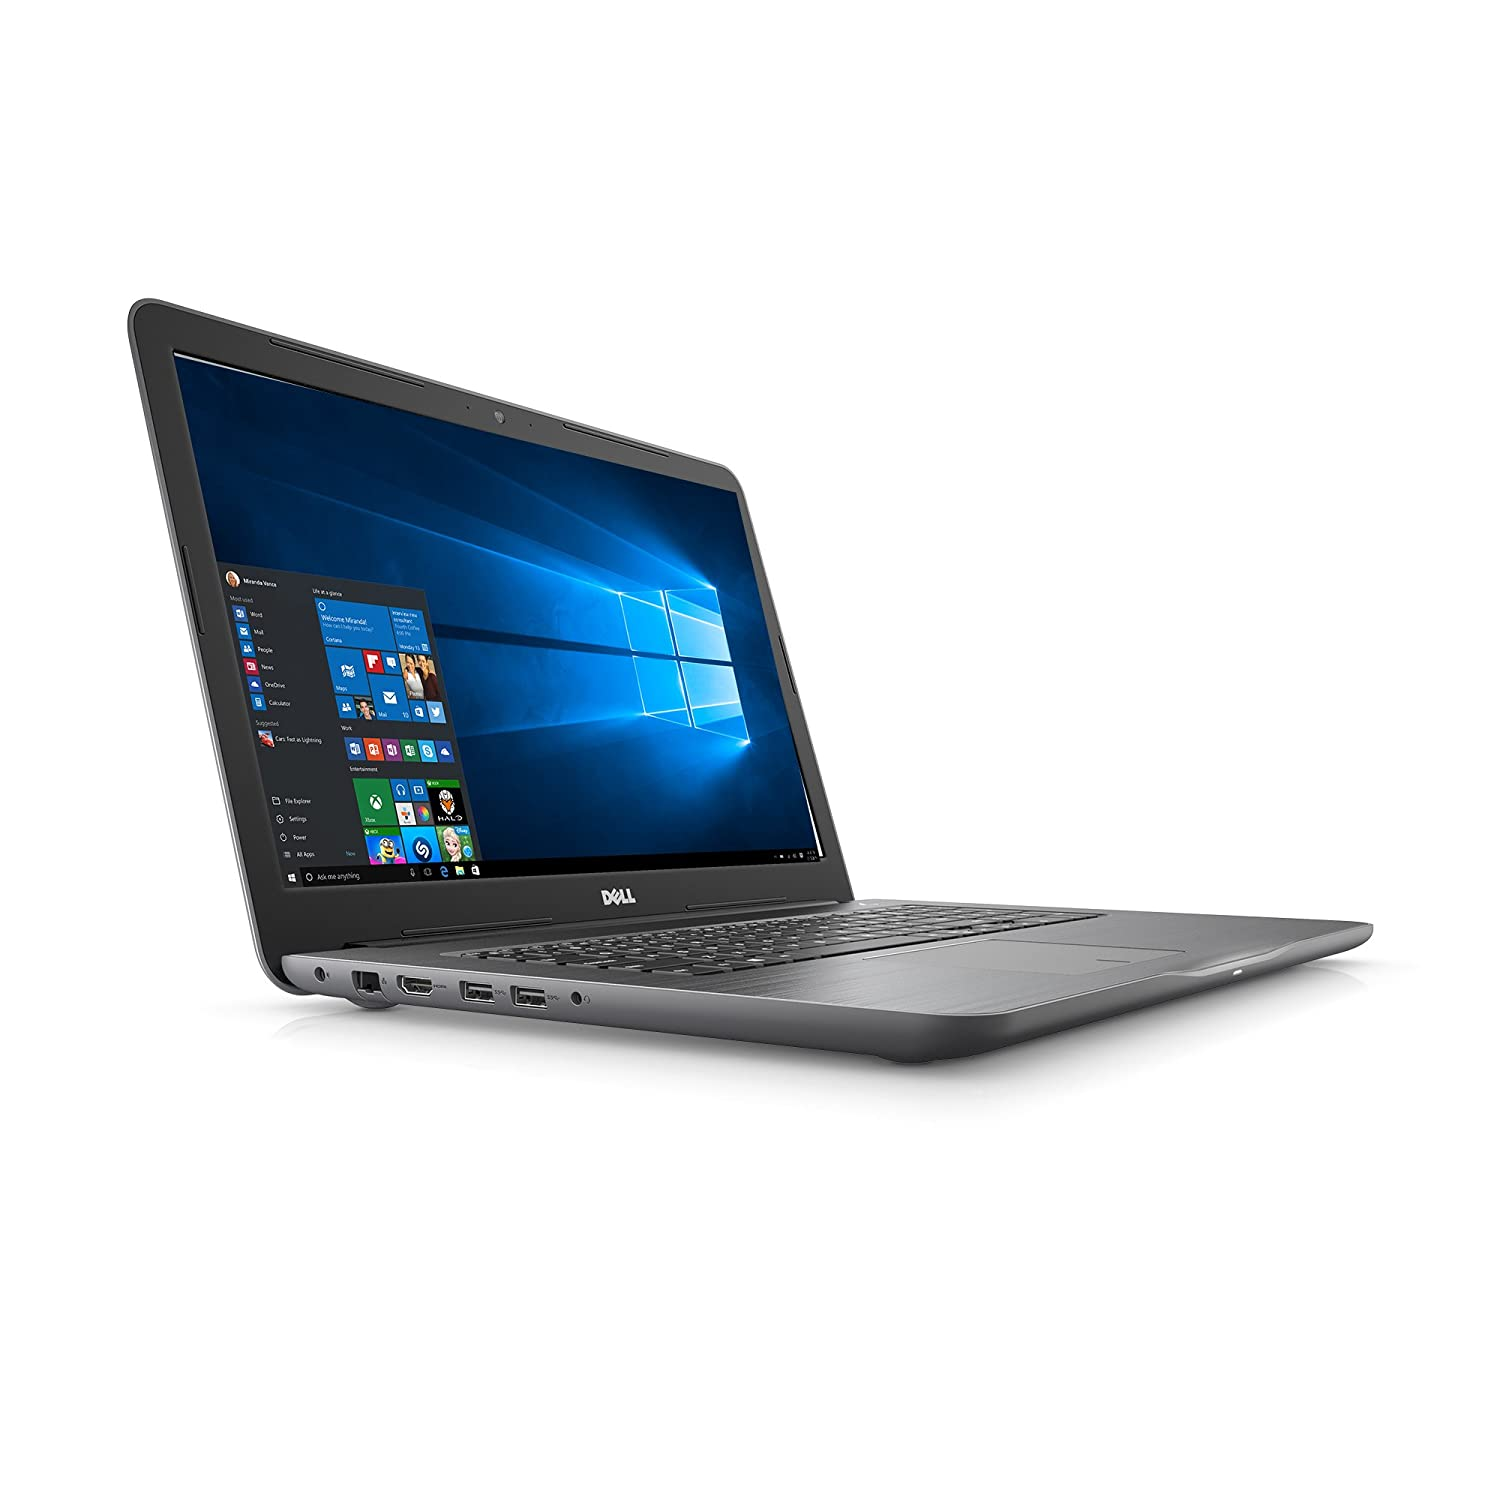 Dell Inspiron I5765 1317gry 173 Fhd Laptop 7th Hardisk External 2tb 25amp039 Usb30 Slim Generation Amda9 9400 8gb Ram 1tb Hdd Computers Accessories